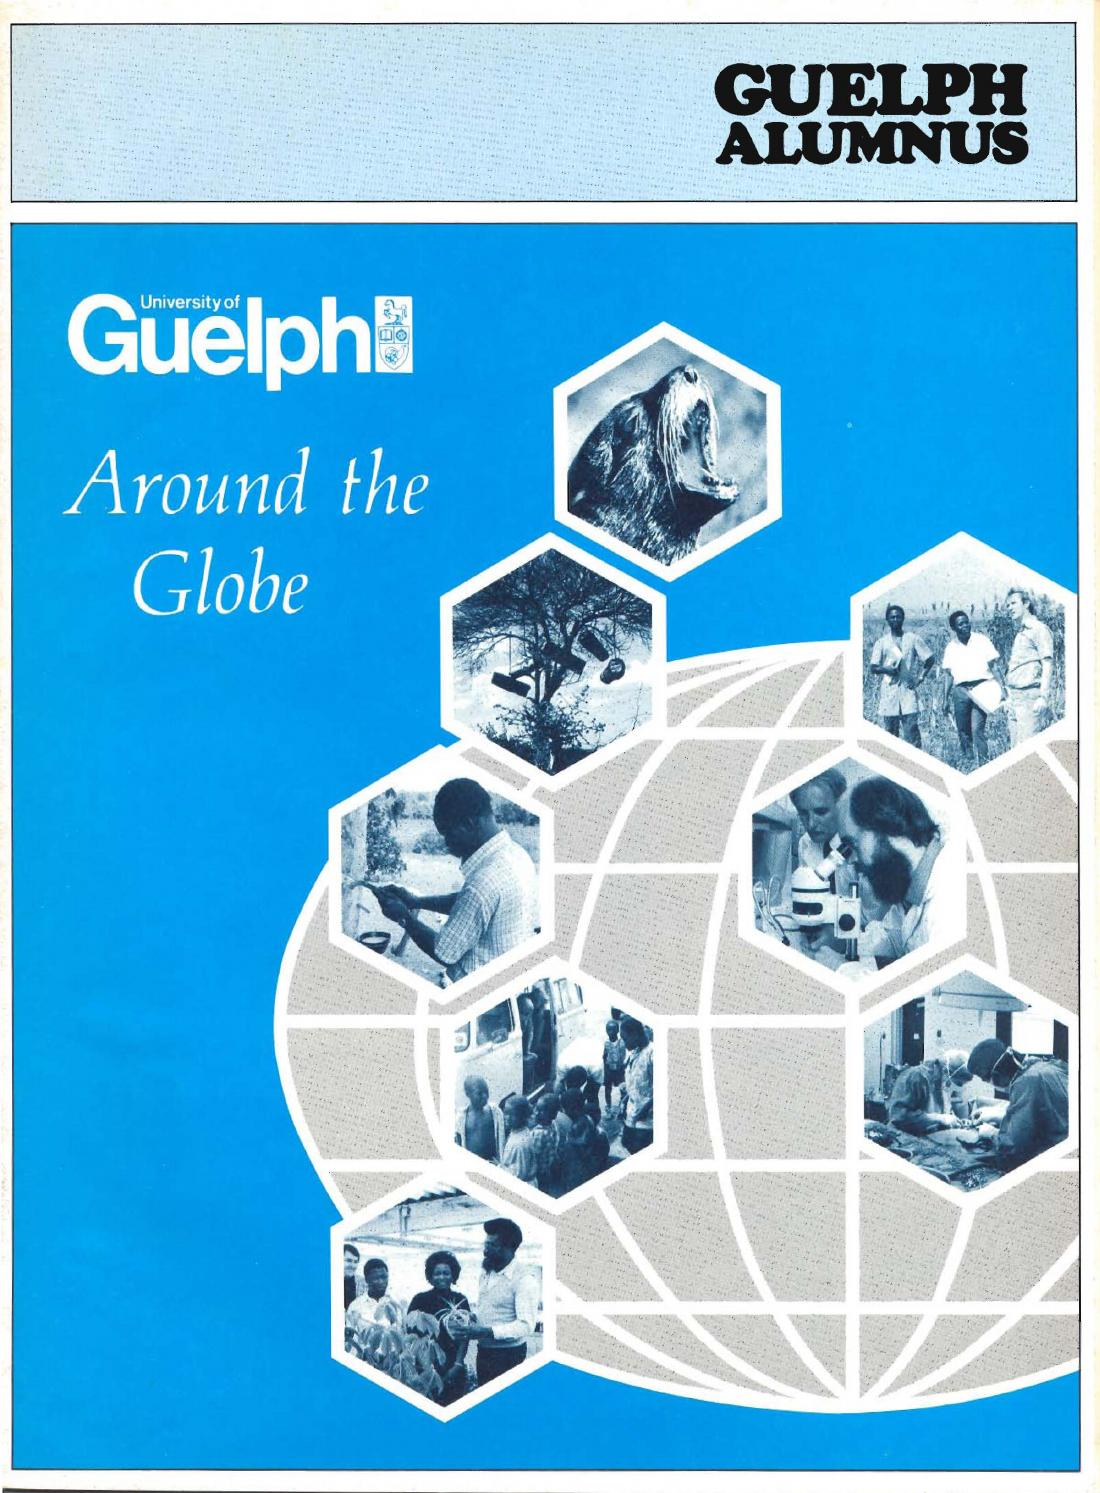 Guelph Alumnus Magazine, Winter 1983 by University of Guelph - issuu